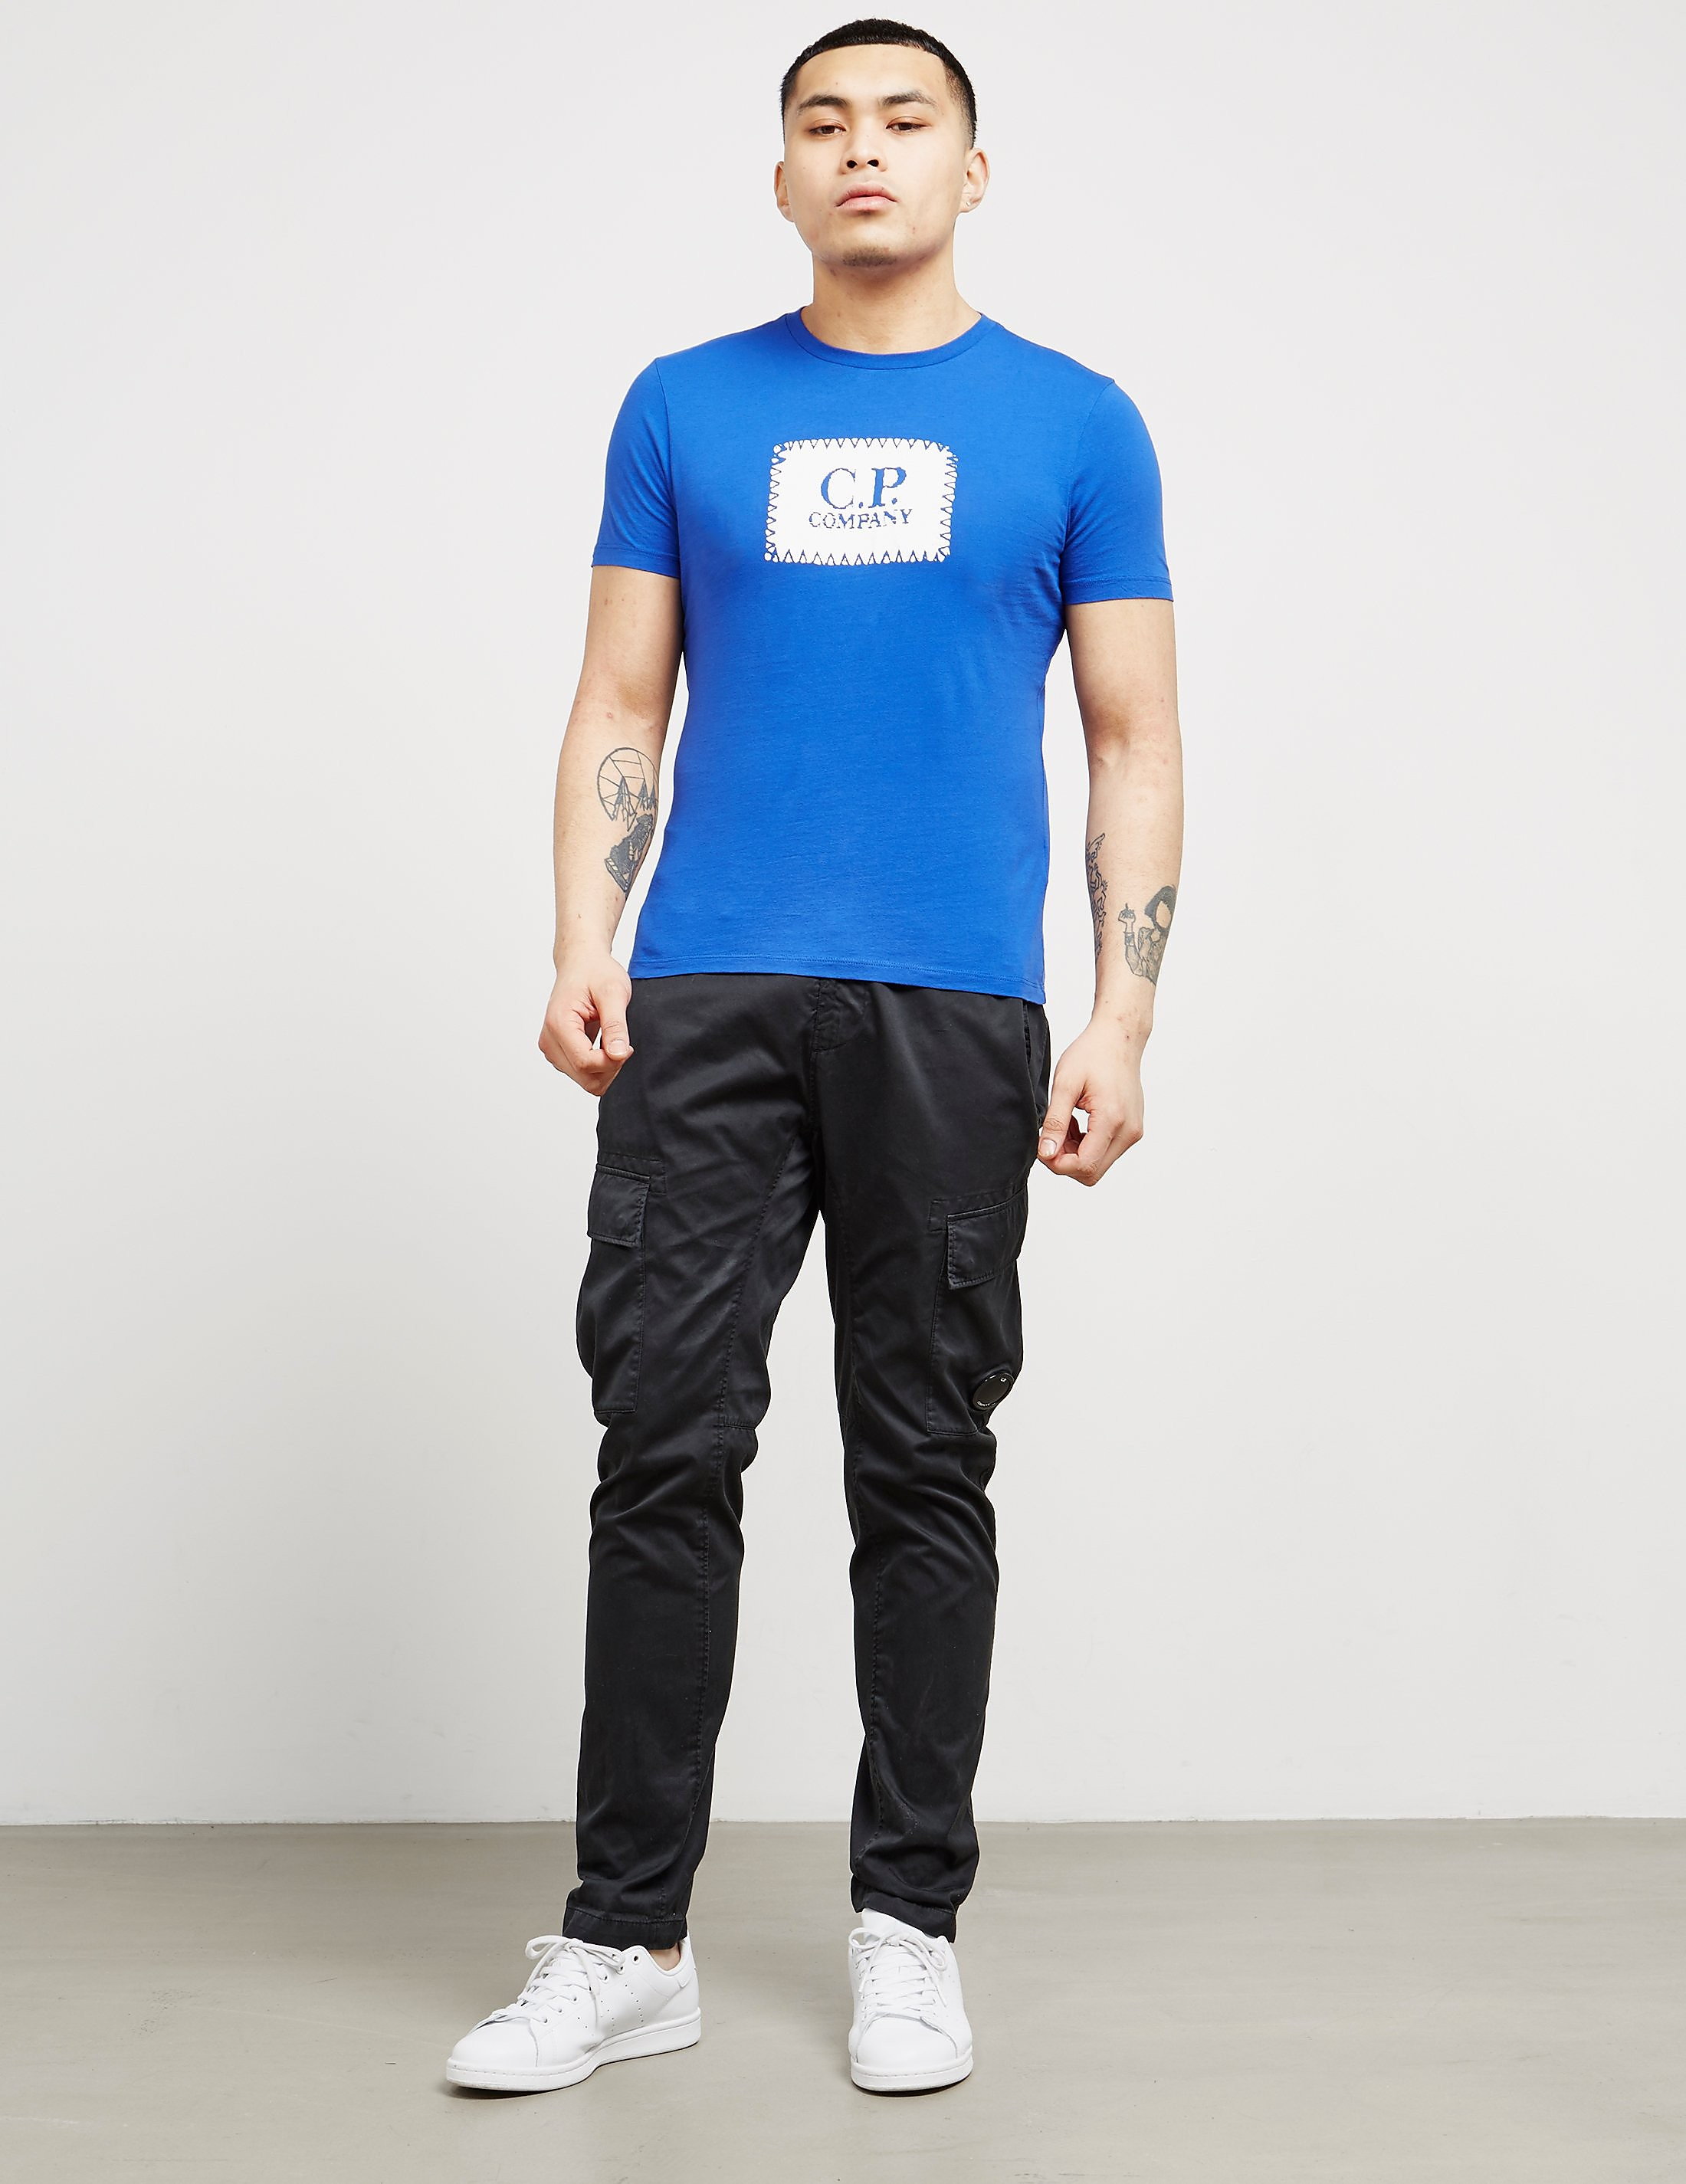 CP Company Tab Short Sleeve T-Shirt